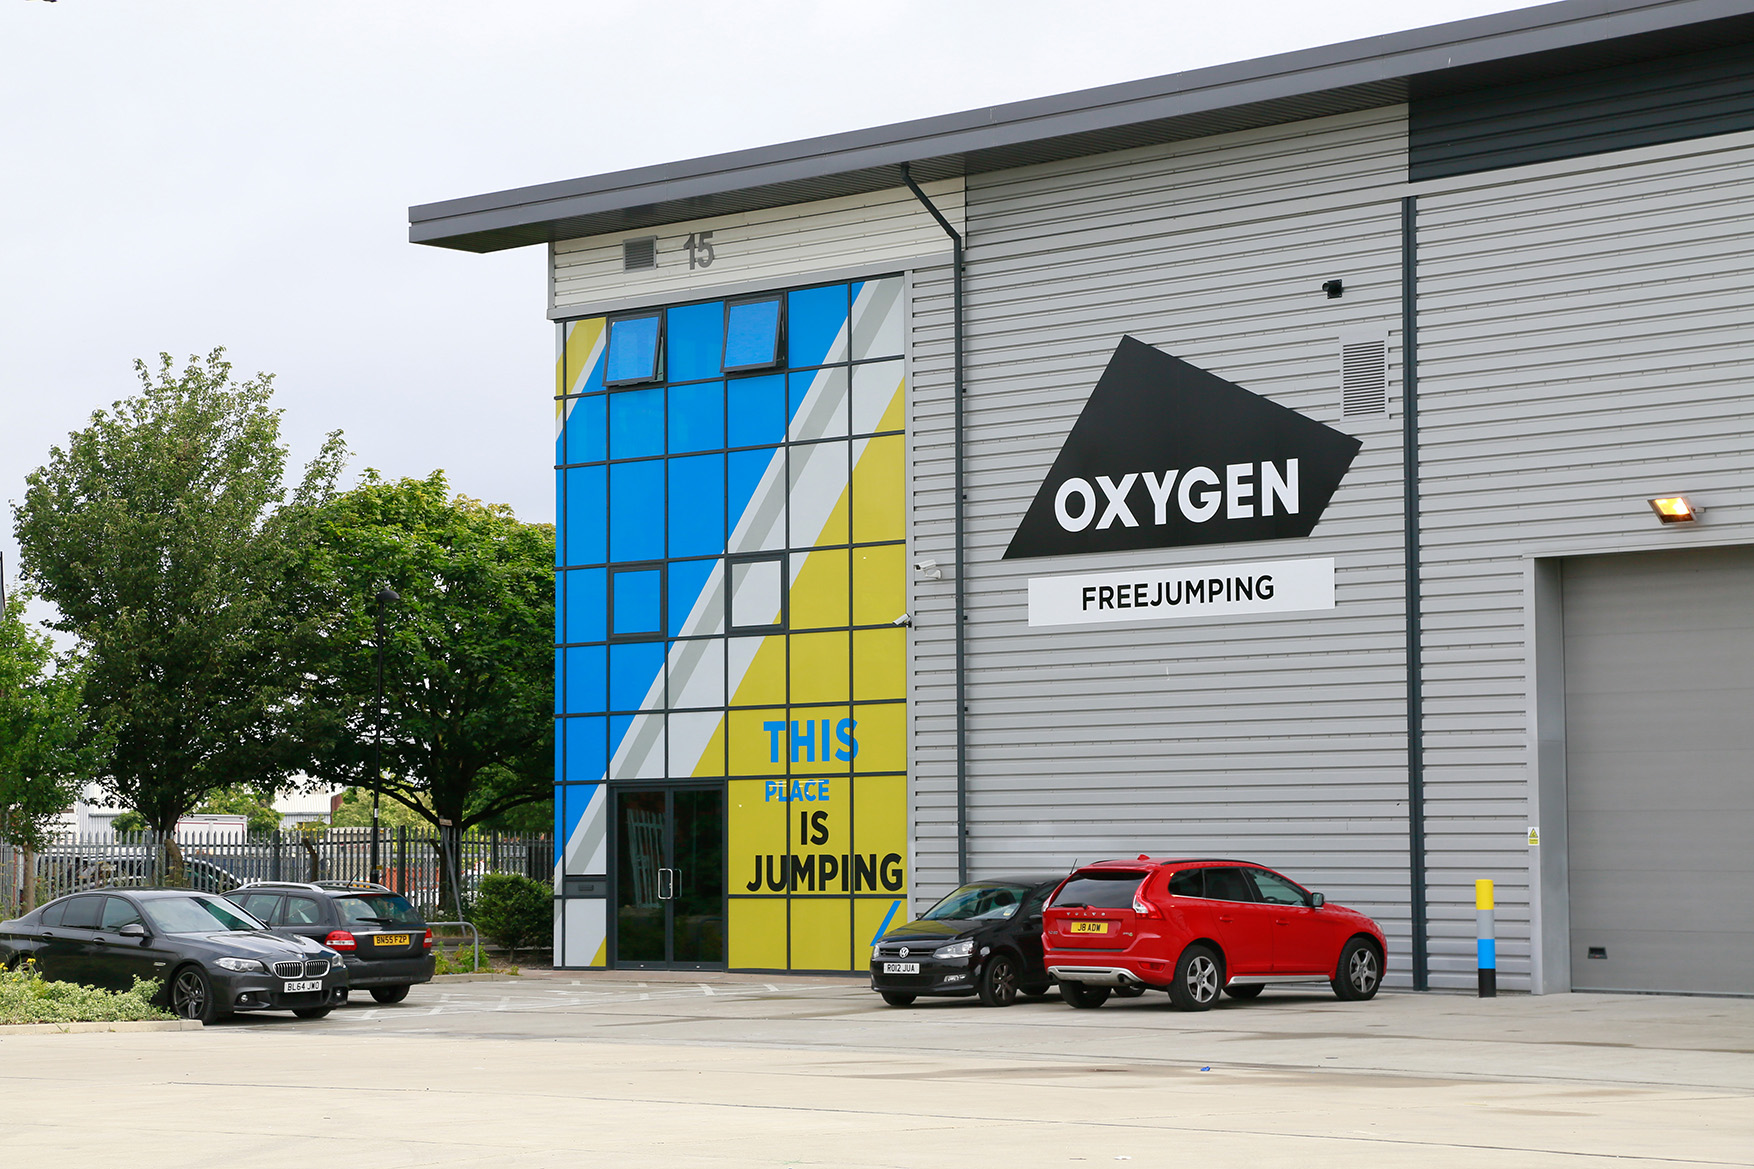 Oxygen Freejumping Acton, London | The Ultimate Trampoline Park